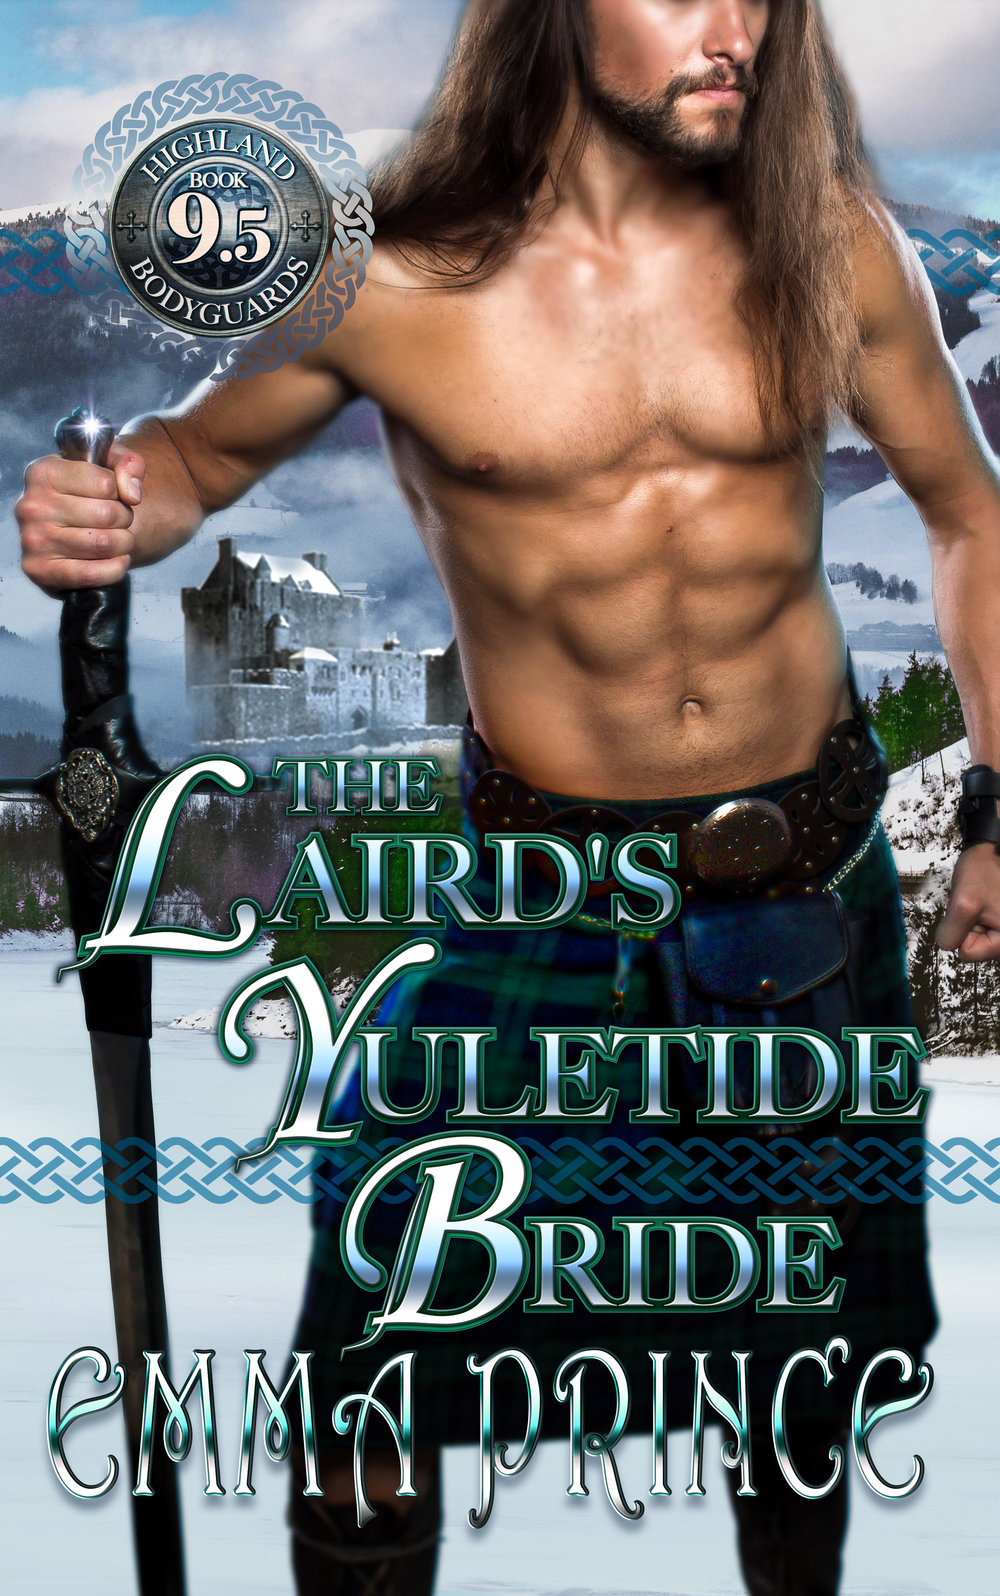 The Laird's Yuletide Bride cover.jpg